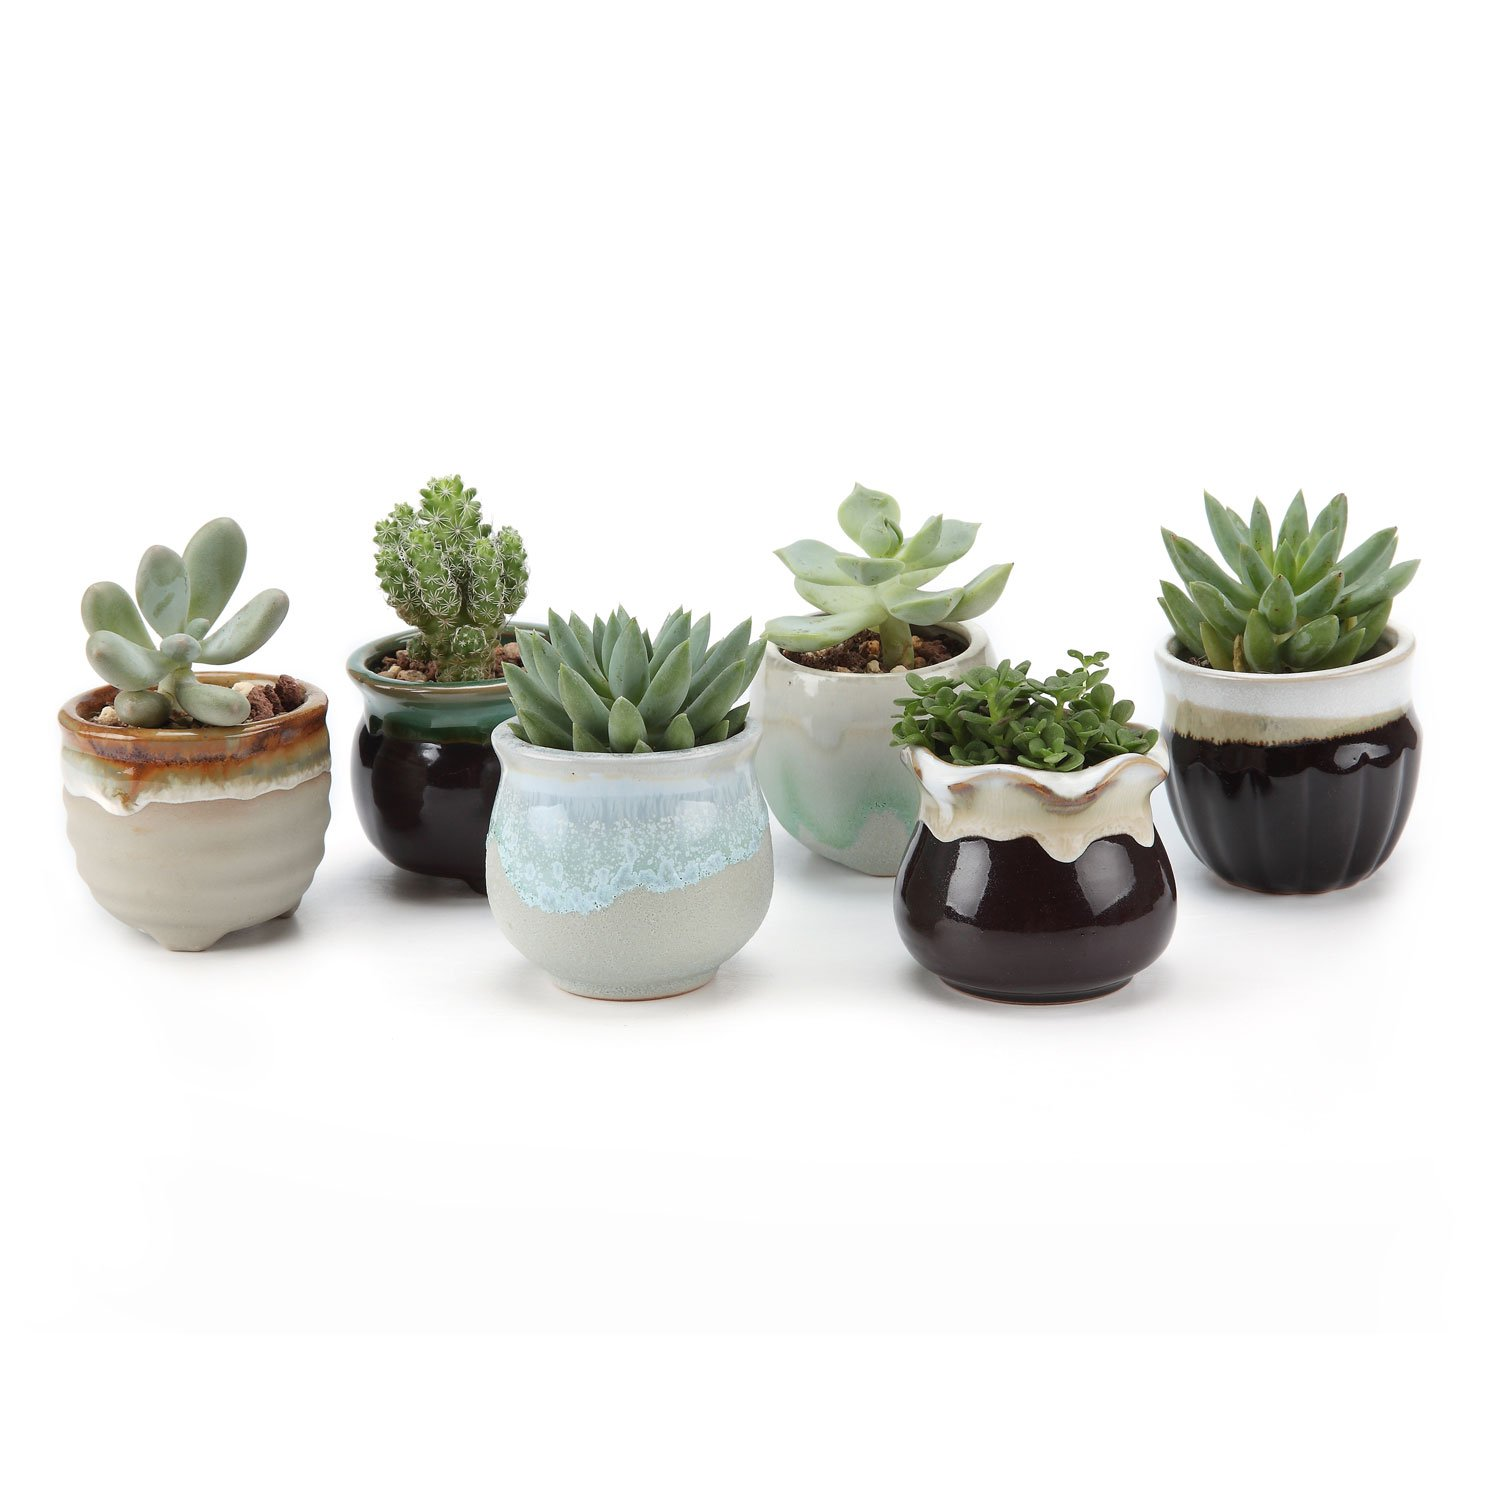 6 mini pots 2 5 inch ceramic plant cactus flower container